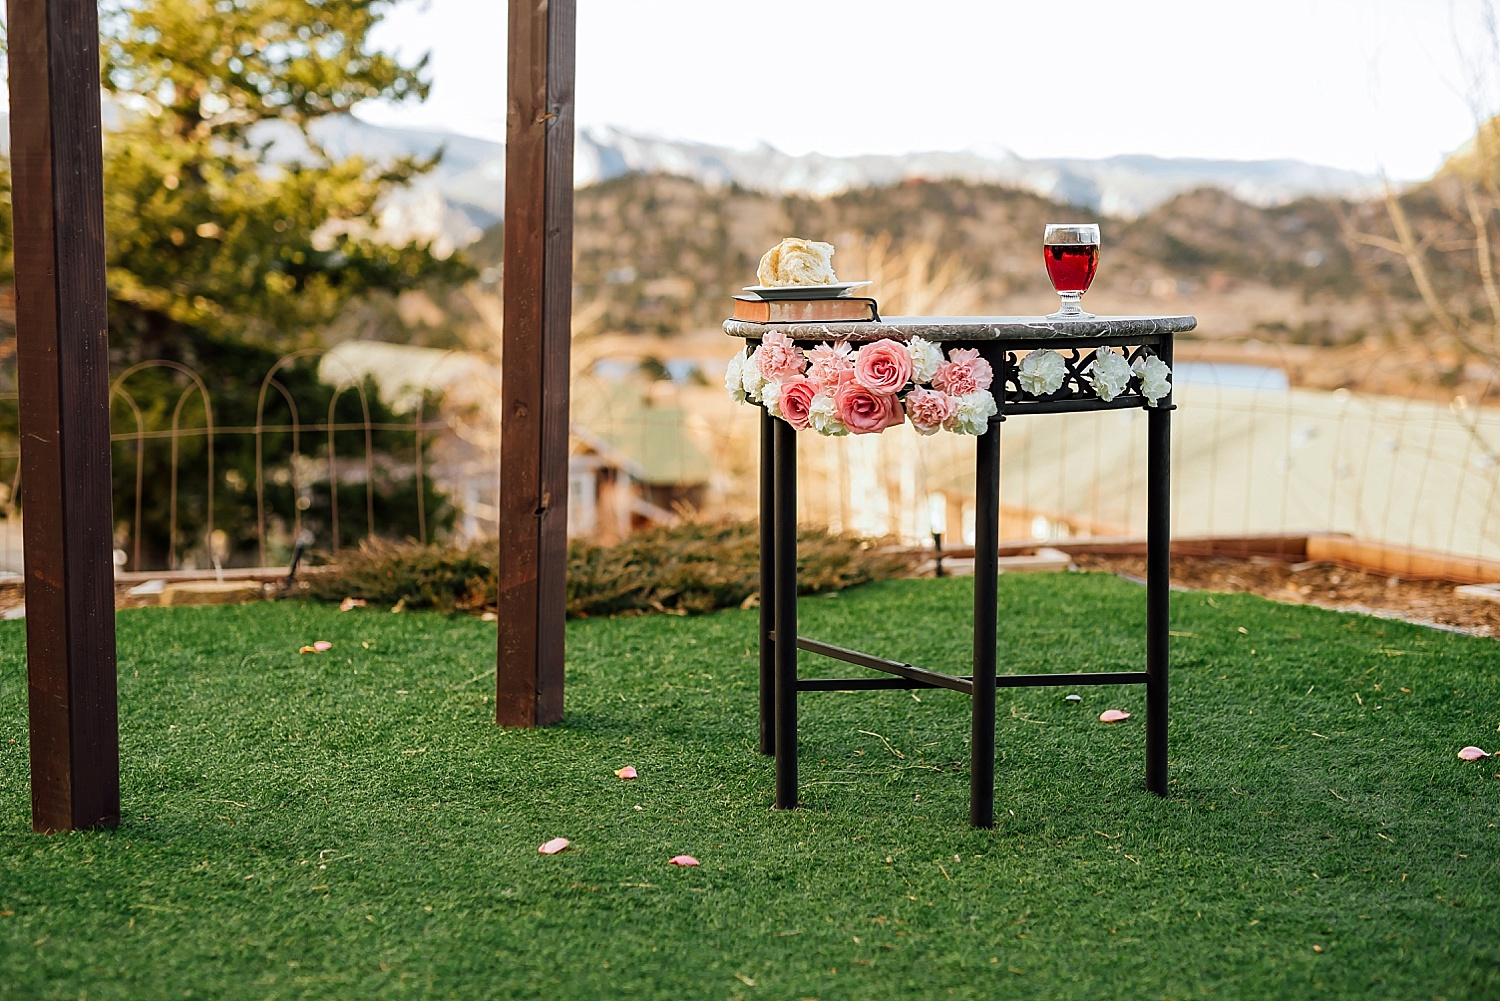 Having communion outside during my wedding ceremony would be such a nice touch. Estes Park isso beautiful!Photo by Maddie Mae Photography